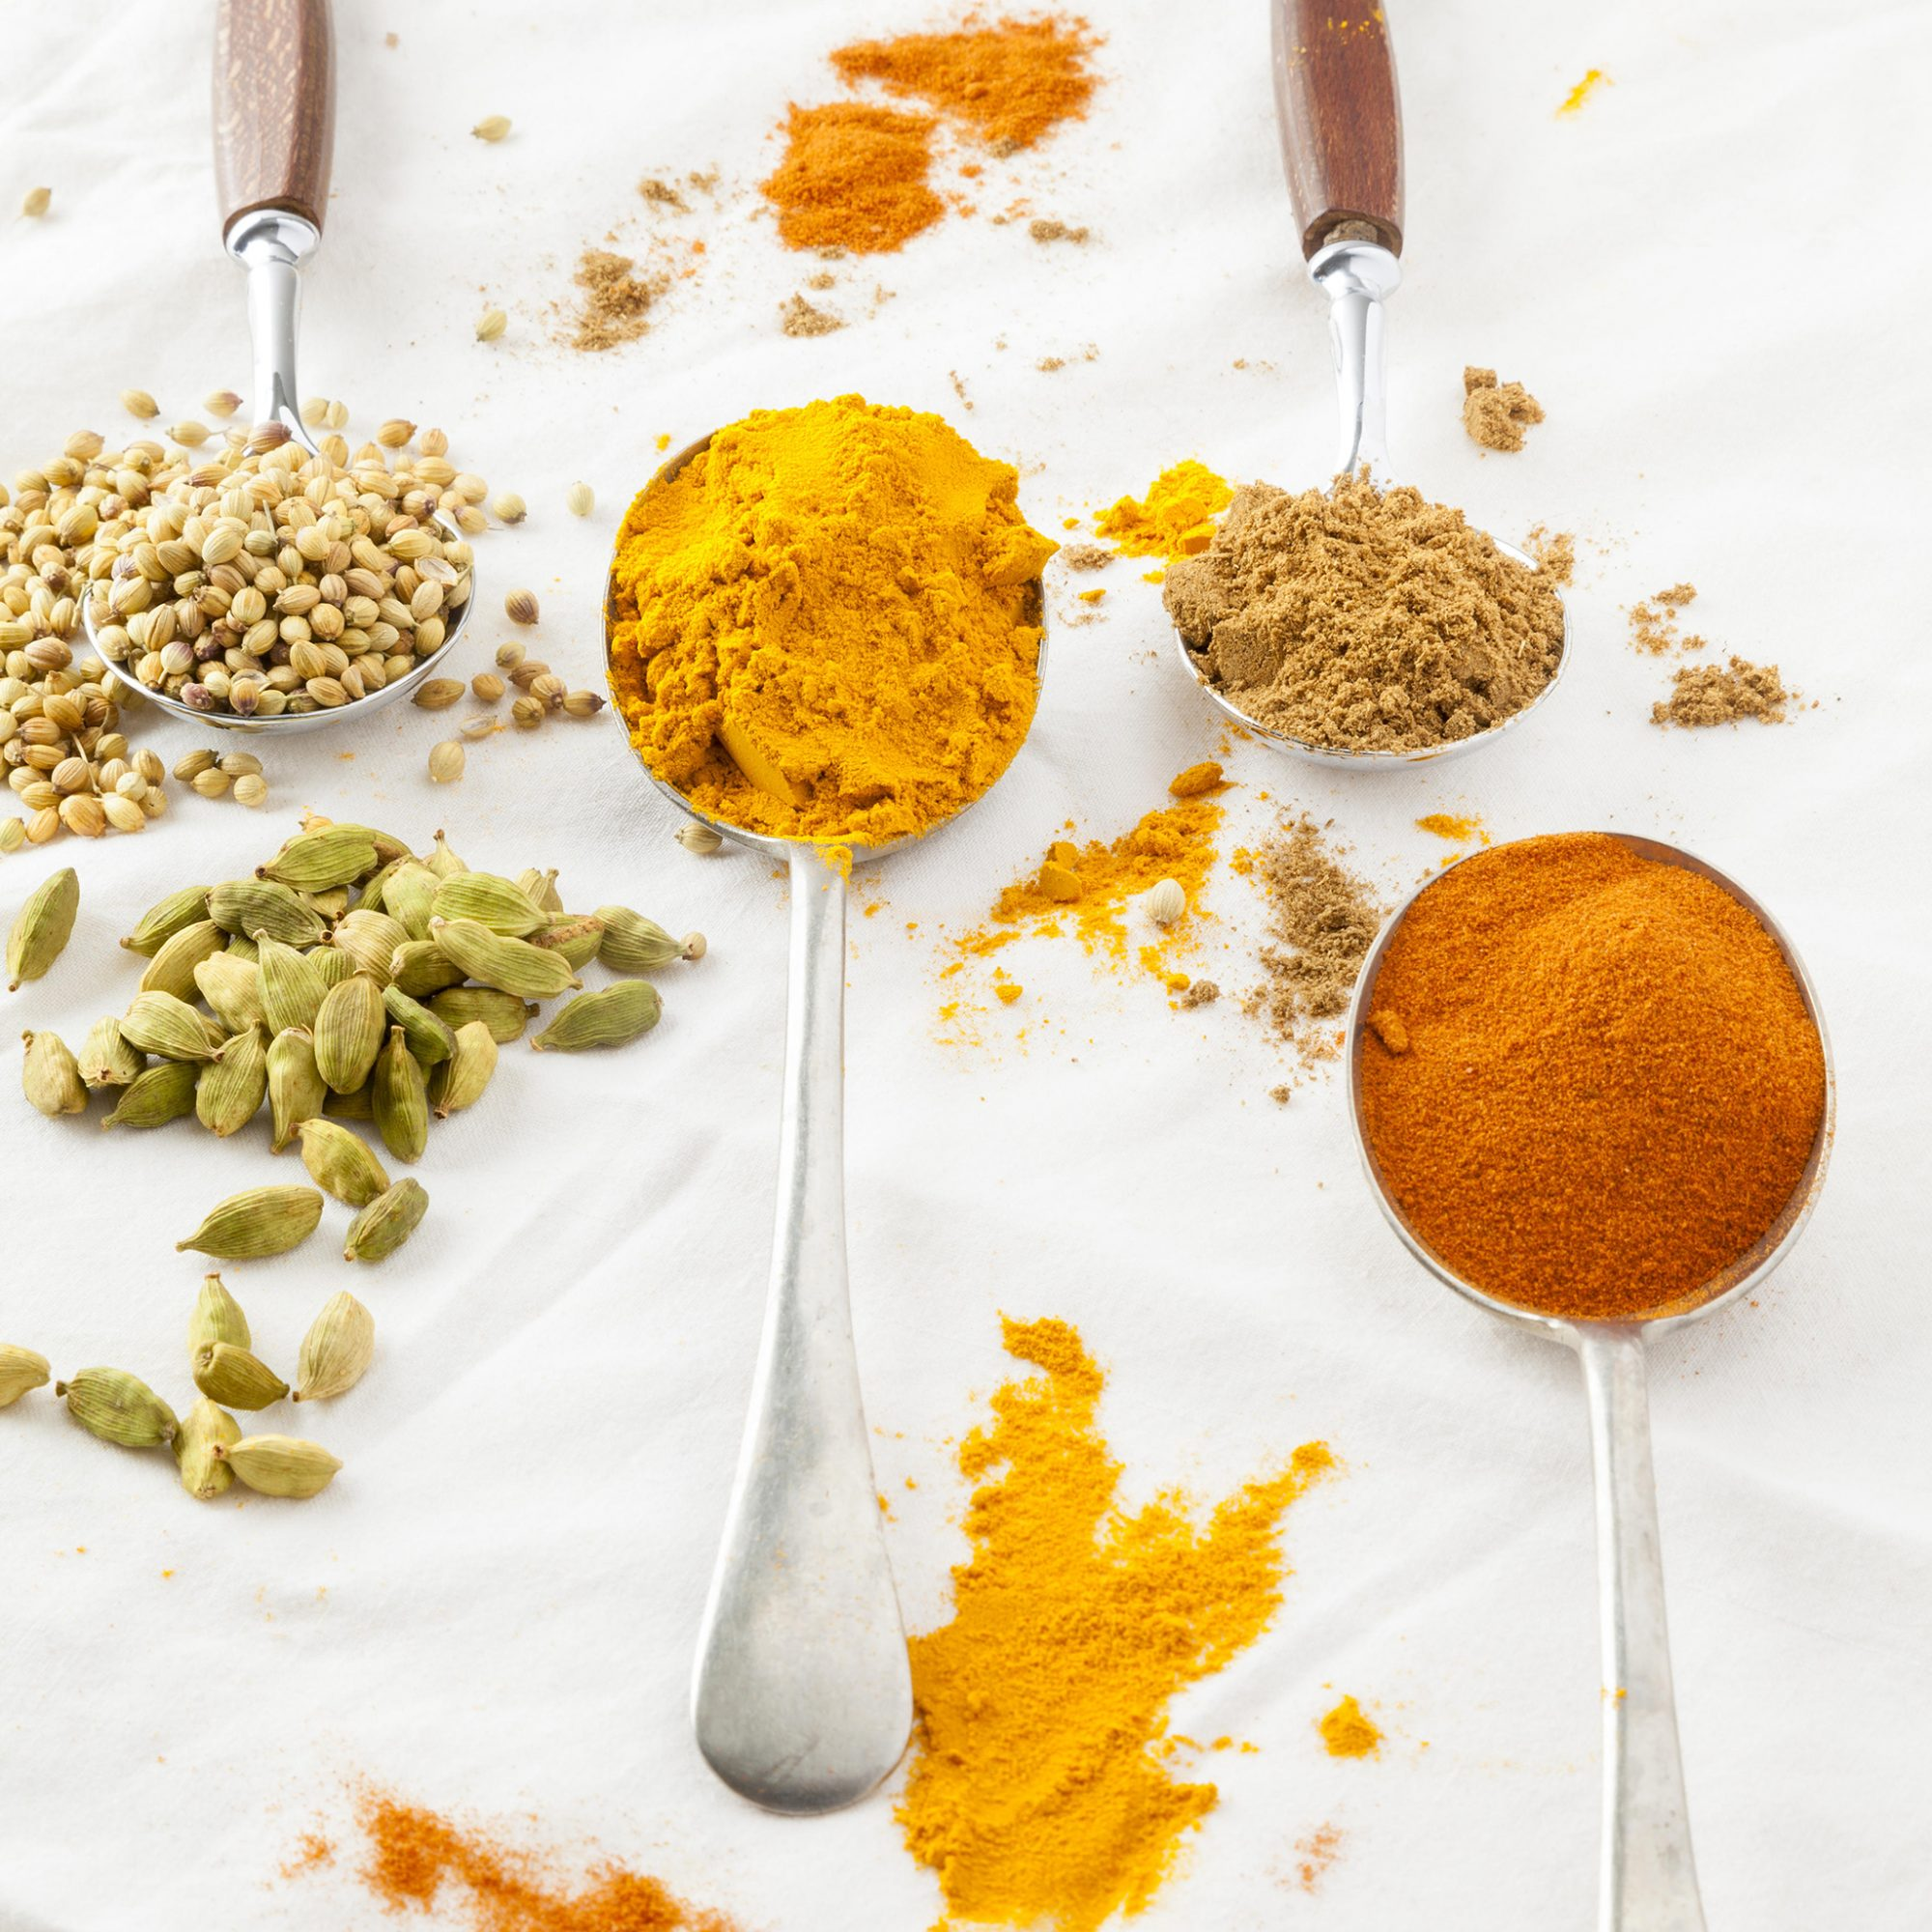 FWX SPICE CONSUMPTION